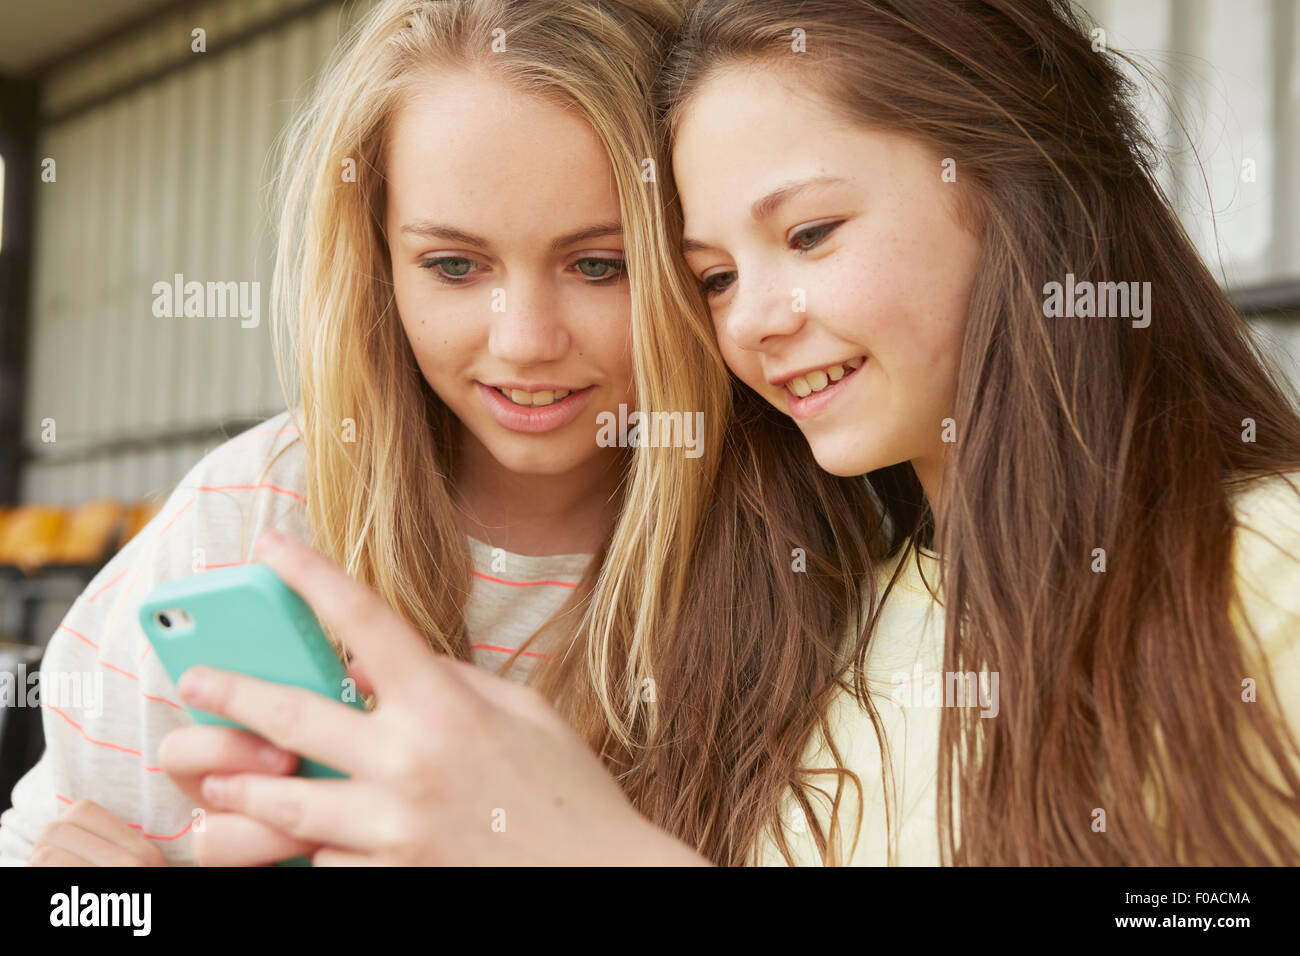 Two girls reading smartphone texts in shelter - Stock Image